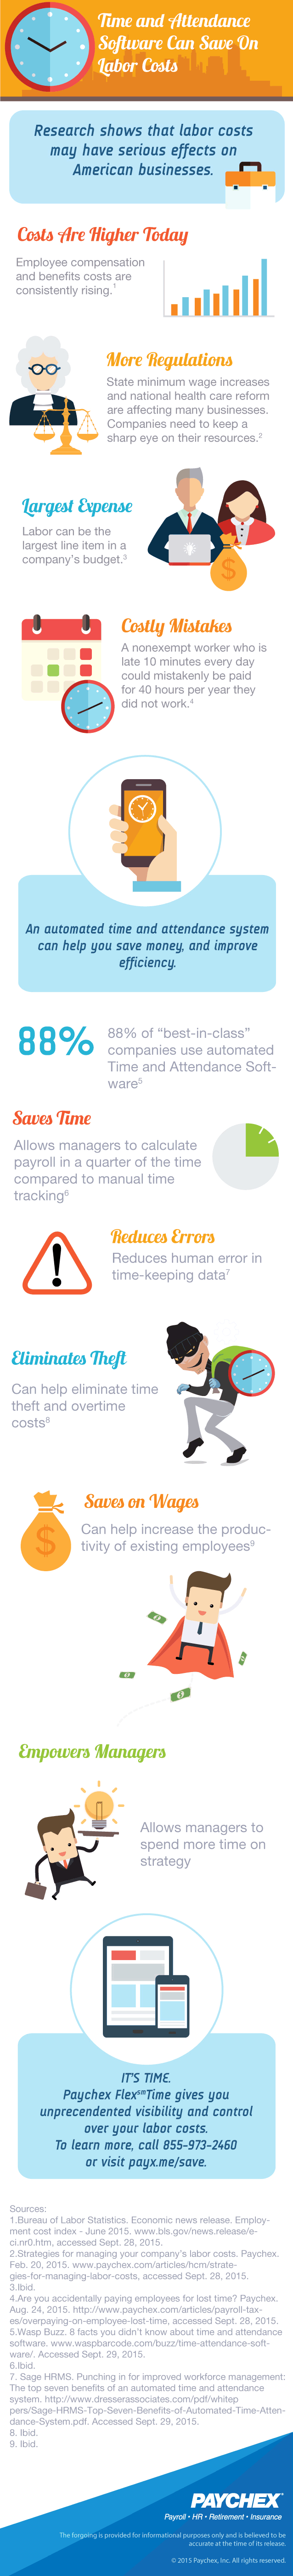 infographic time and attendance software can save time and money